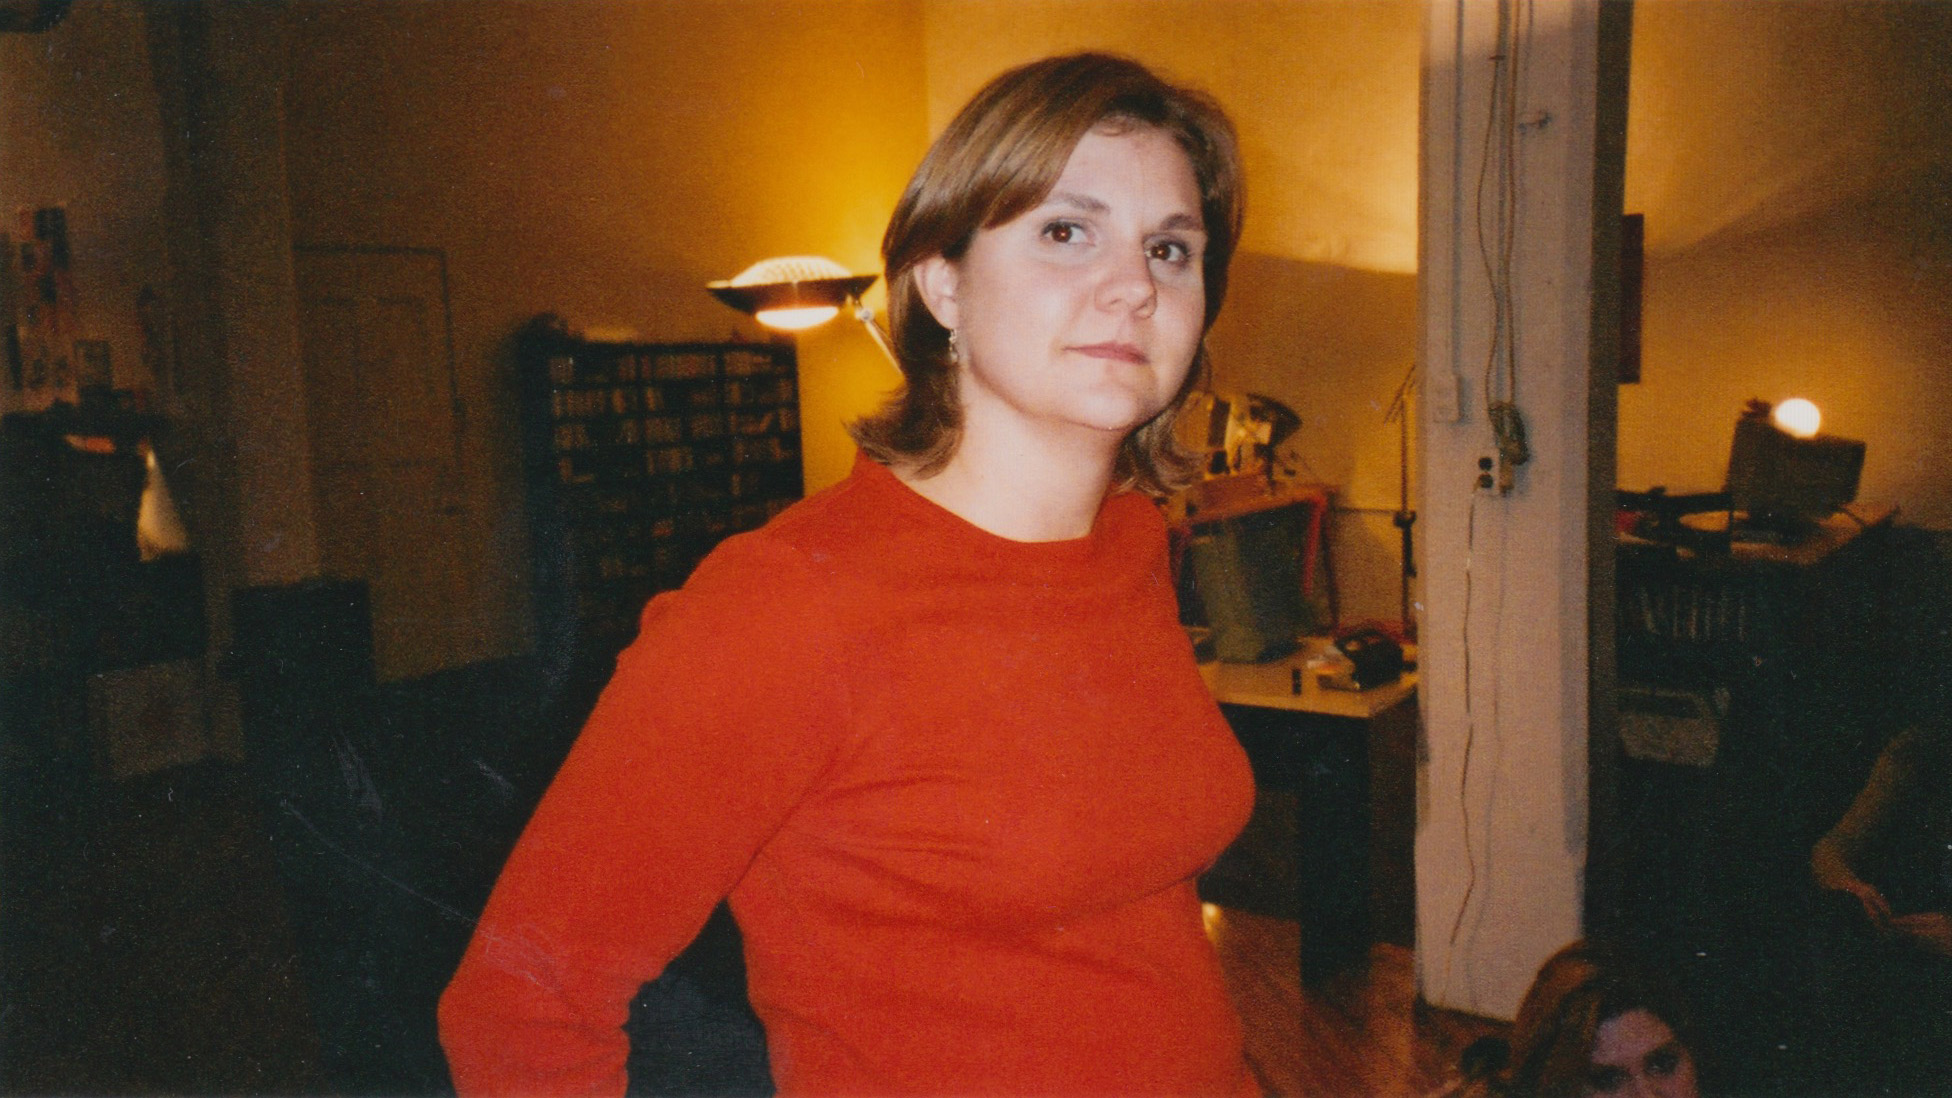 A woman in a red shirt